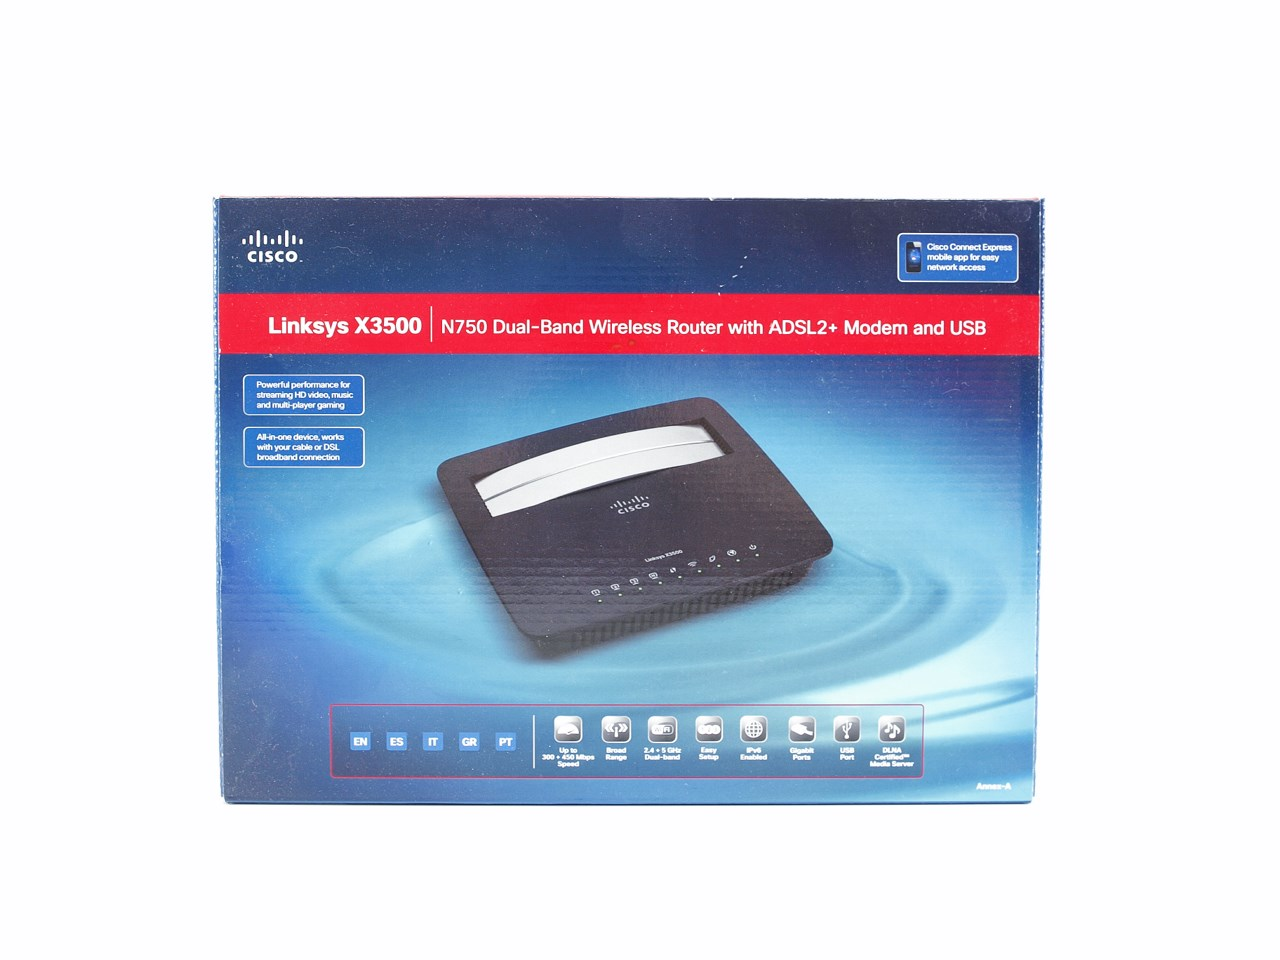 linksys x3500 n750 dualband wireless modemrouter review